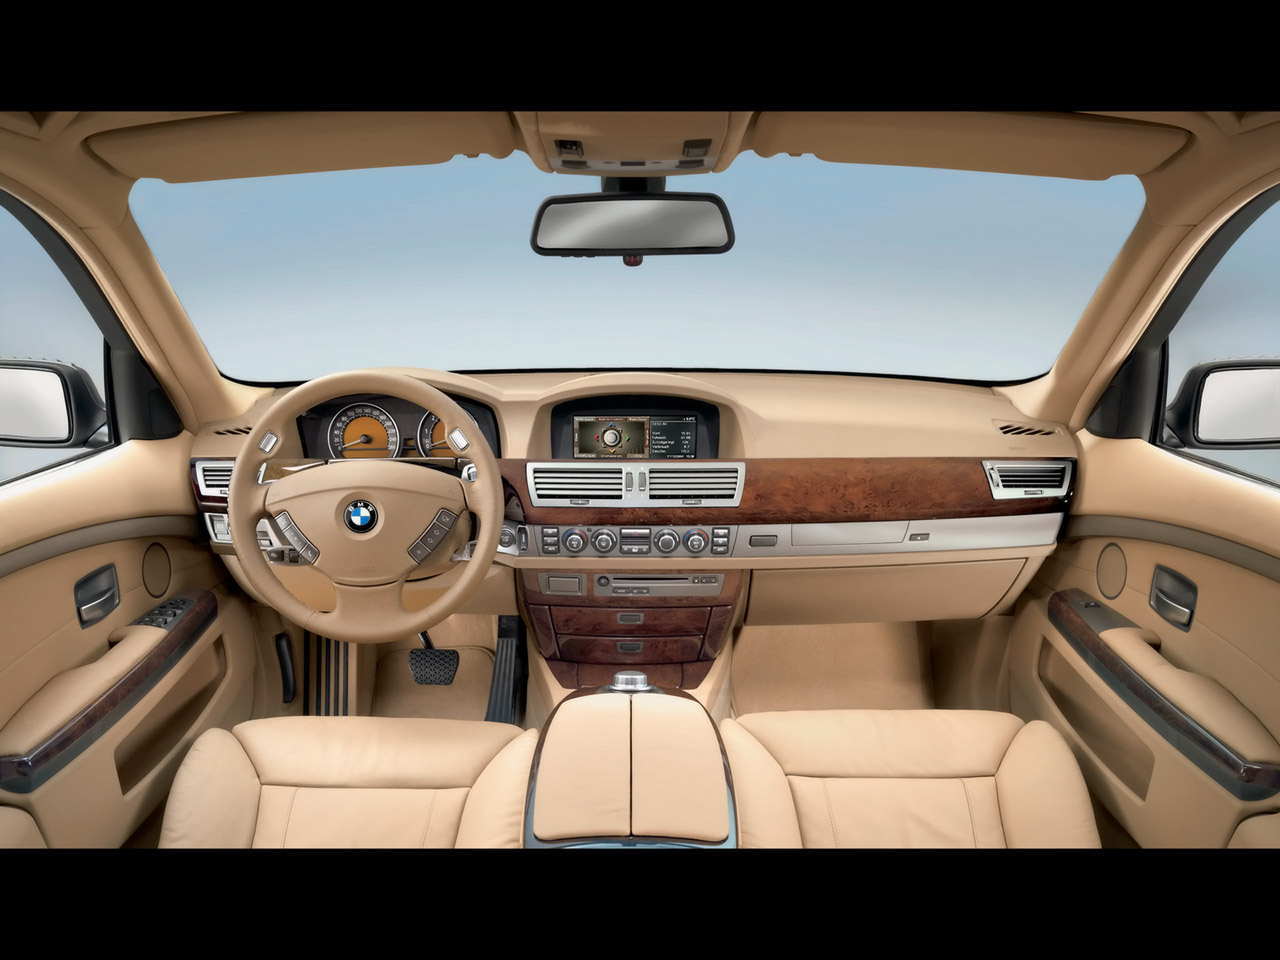 Bmw cars interior cars wallpapers and pictures car images for Interieur voiture de luxe